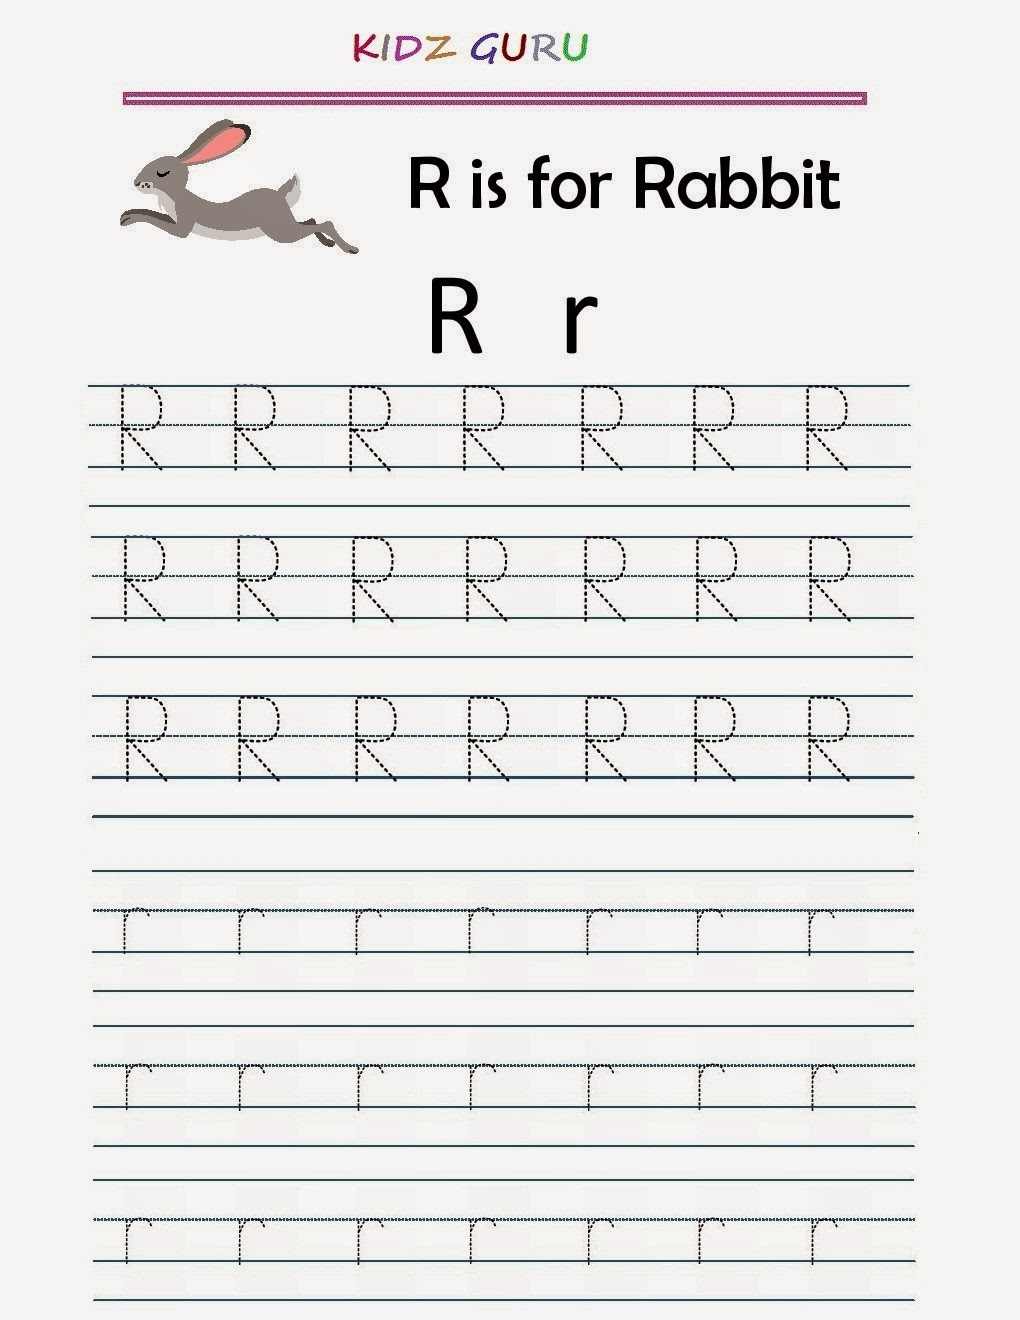 worksheet Kindergarten Tracing Worksheets kindergarten worksheets printable tracing worksheet alphabet r r